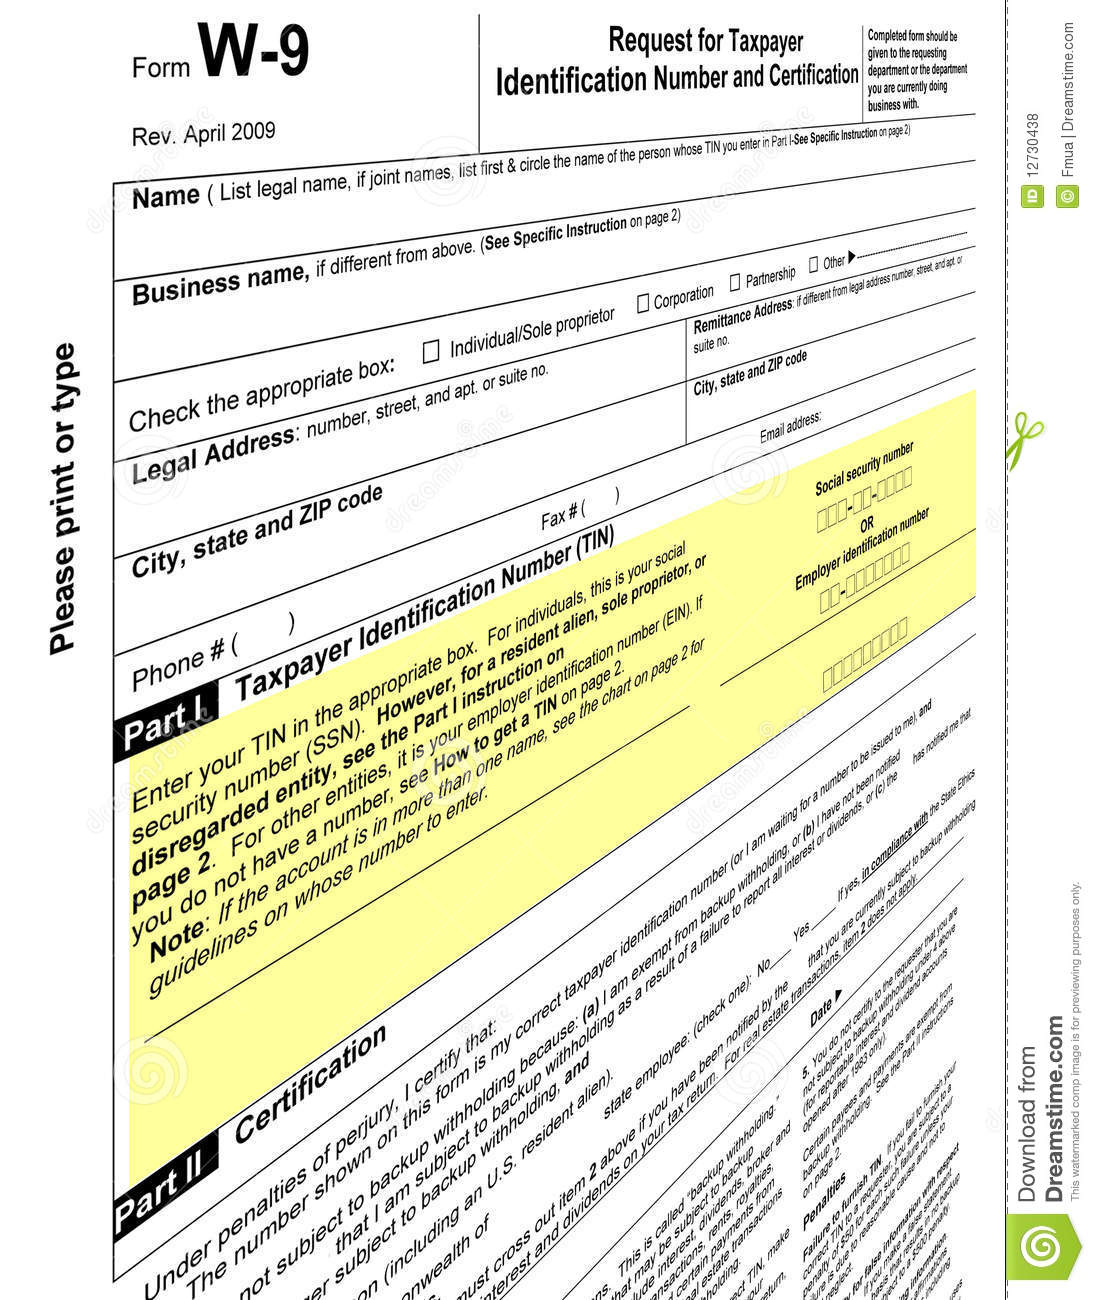 Form new form 1099 backup withholding form 1099 form backup withholding printable the tax form form w9 w9 paying w9 tax revenue falaconquin